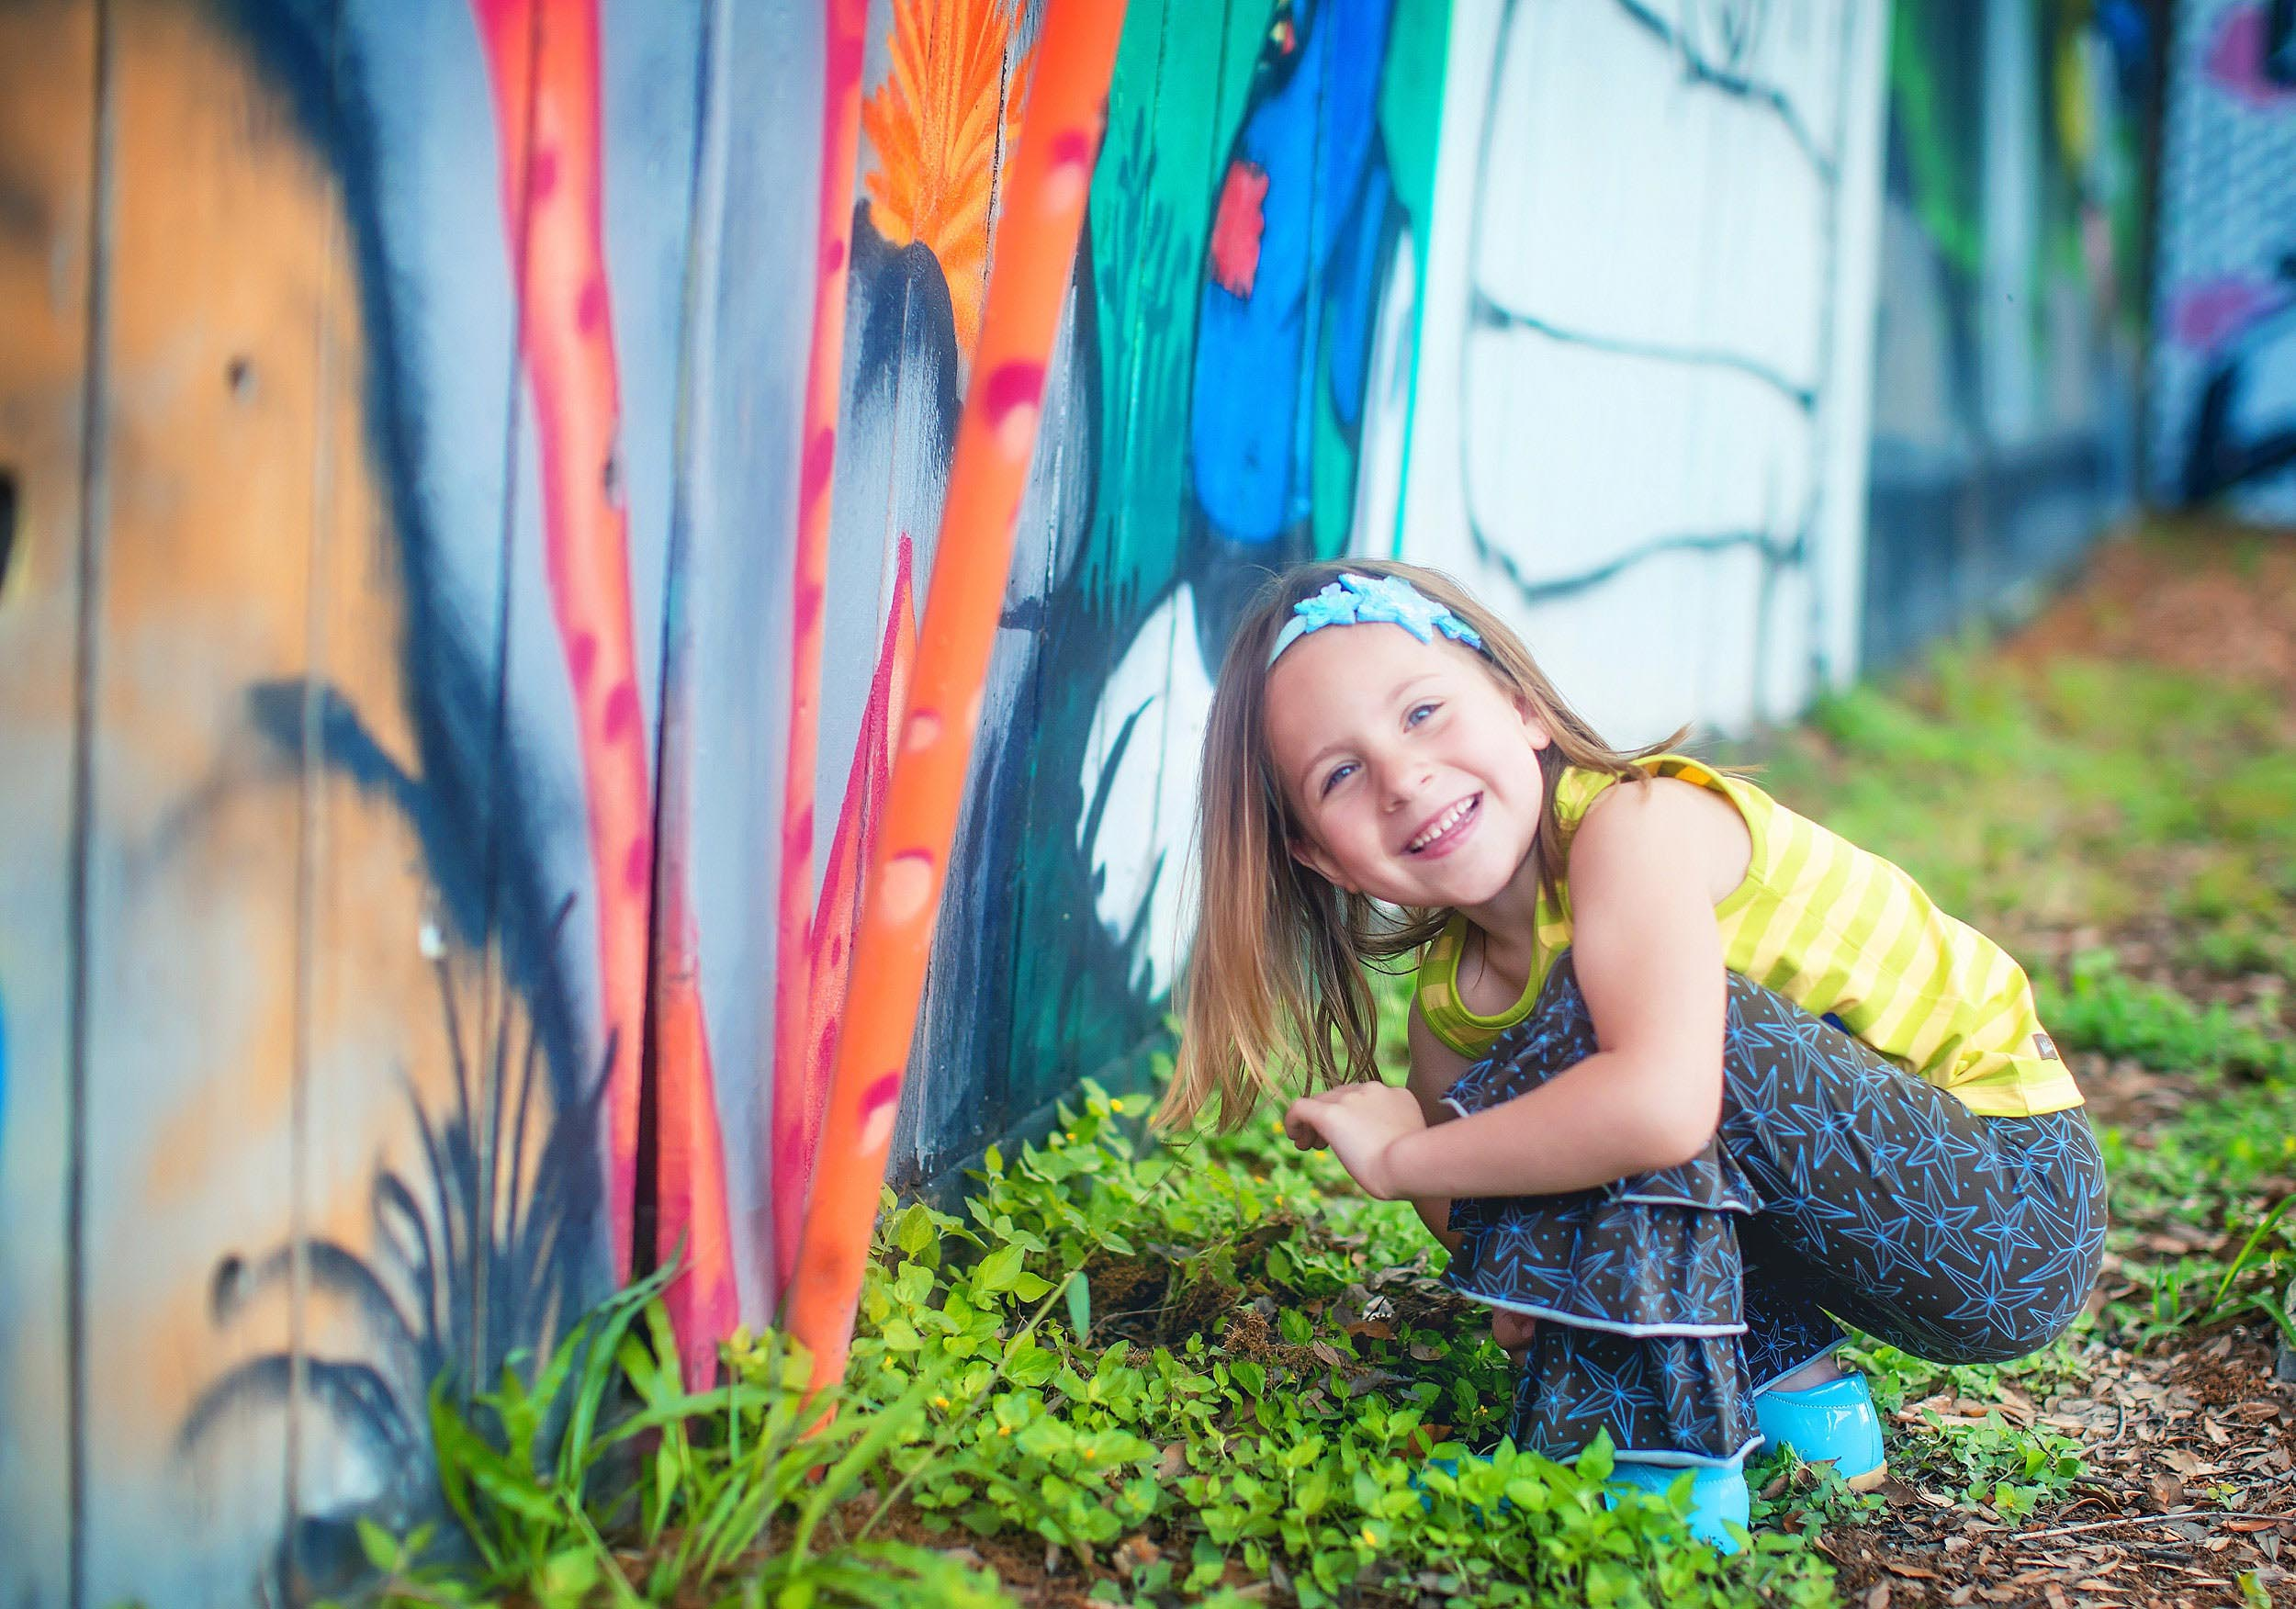 Colorful lifestyle portrait of little girl by art walls in Houston by spryART photography.